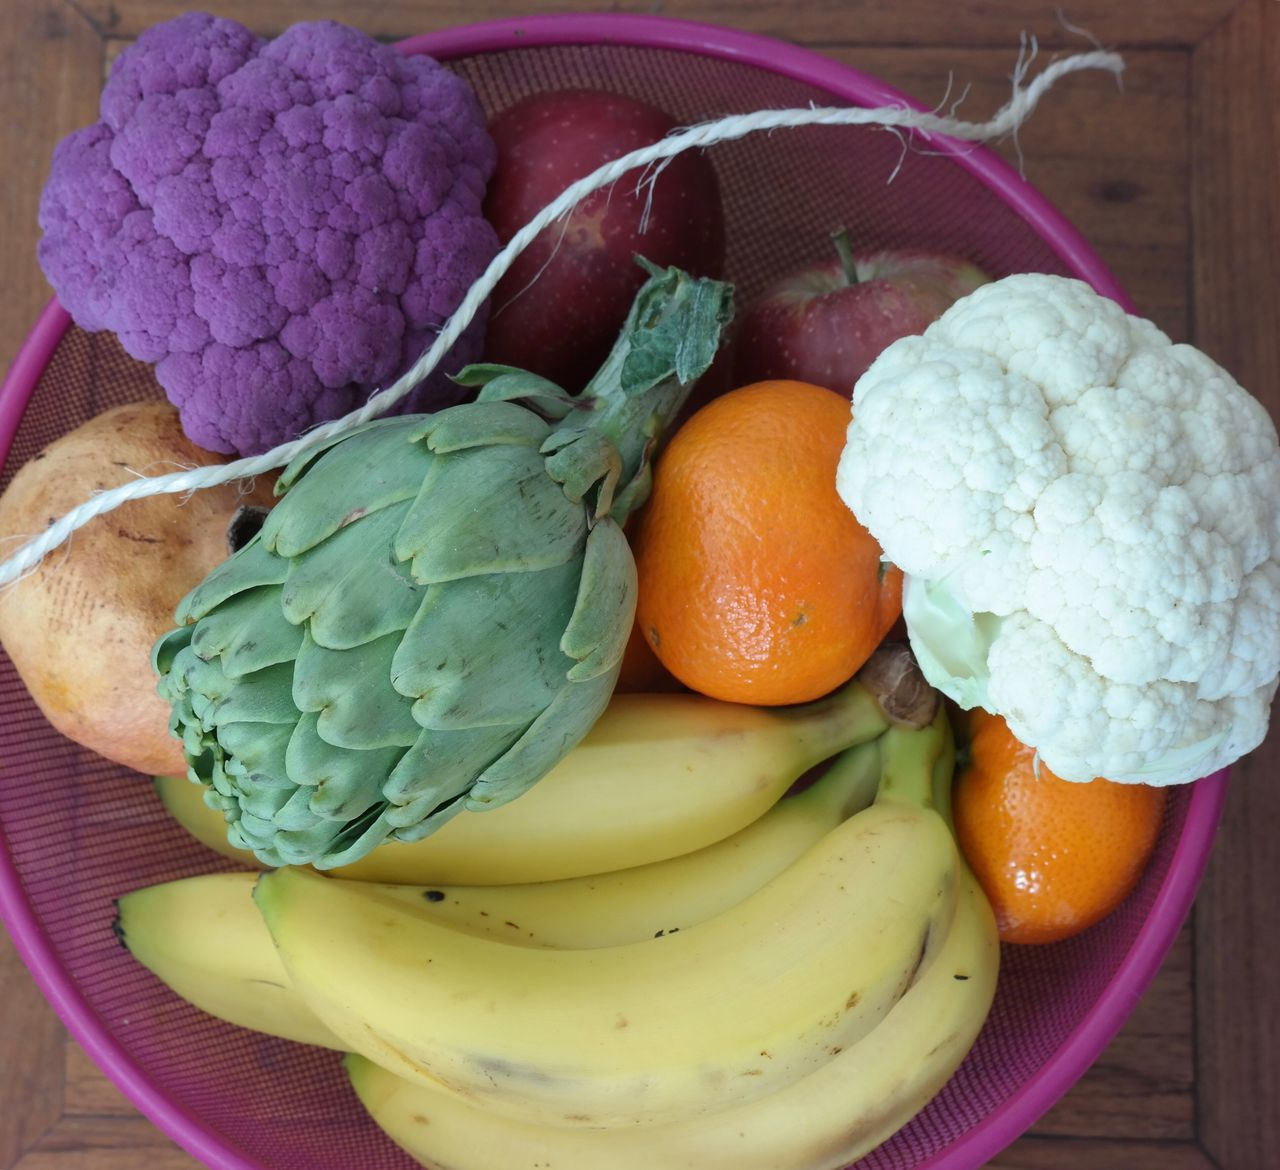 Close-Up Of Fruits And Vegetables In Bowl